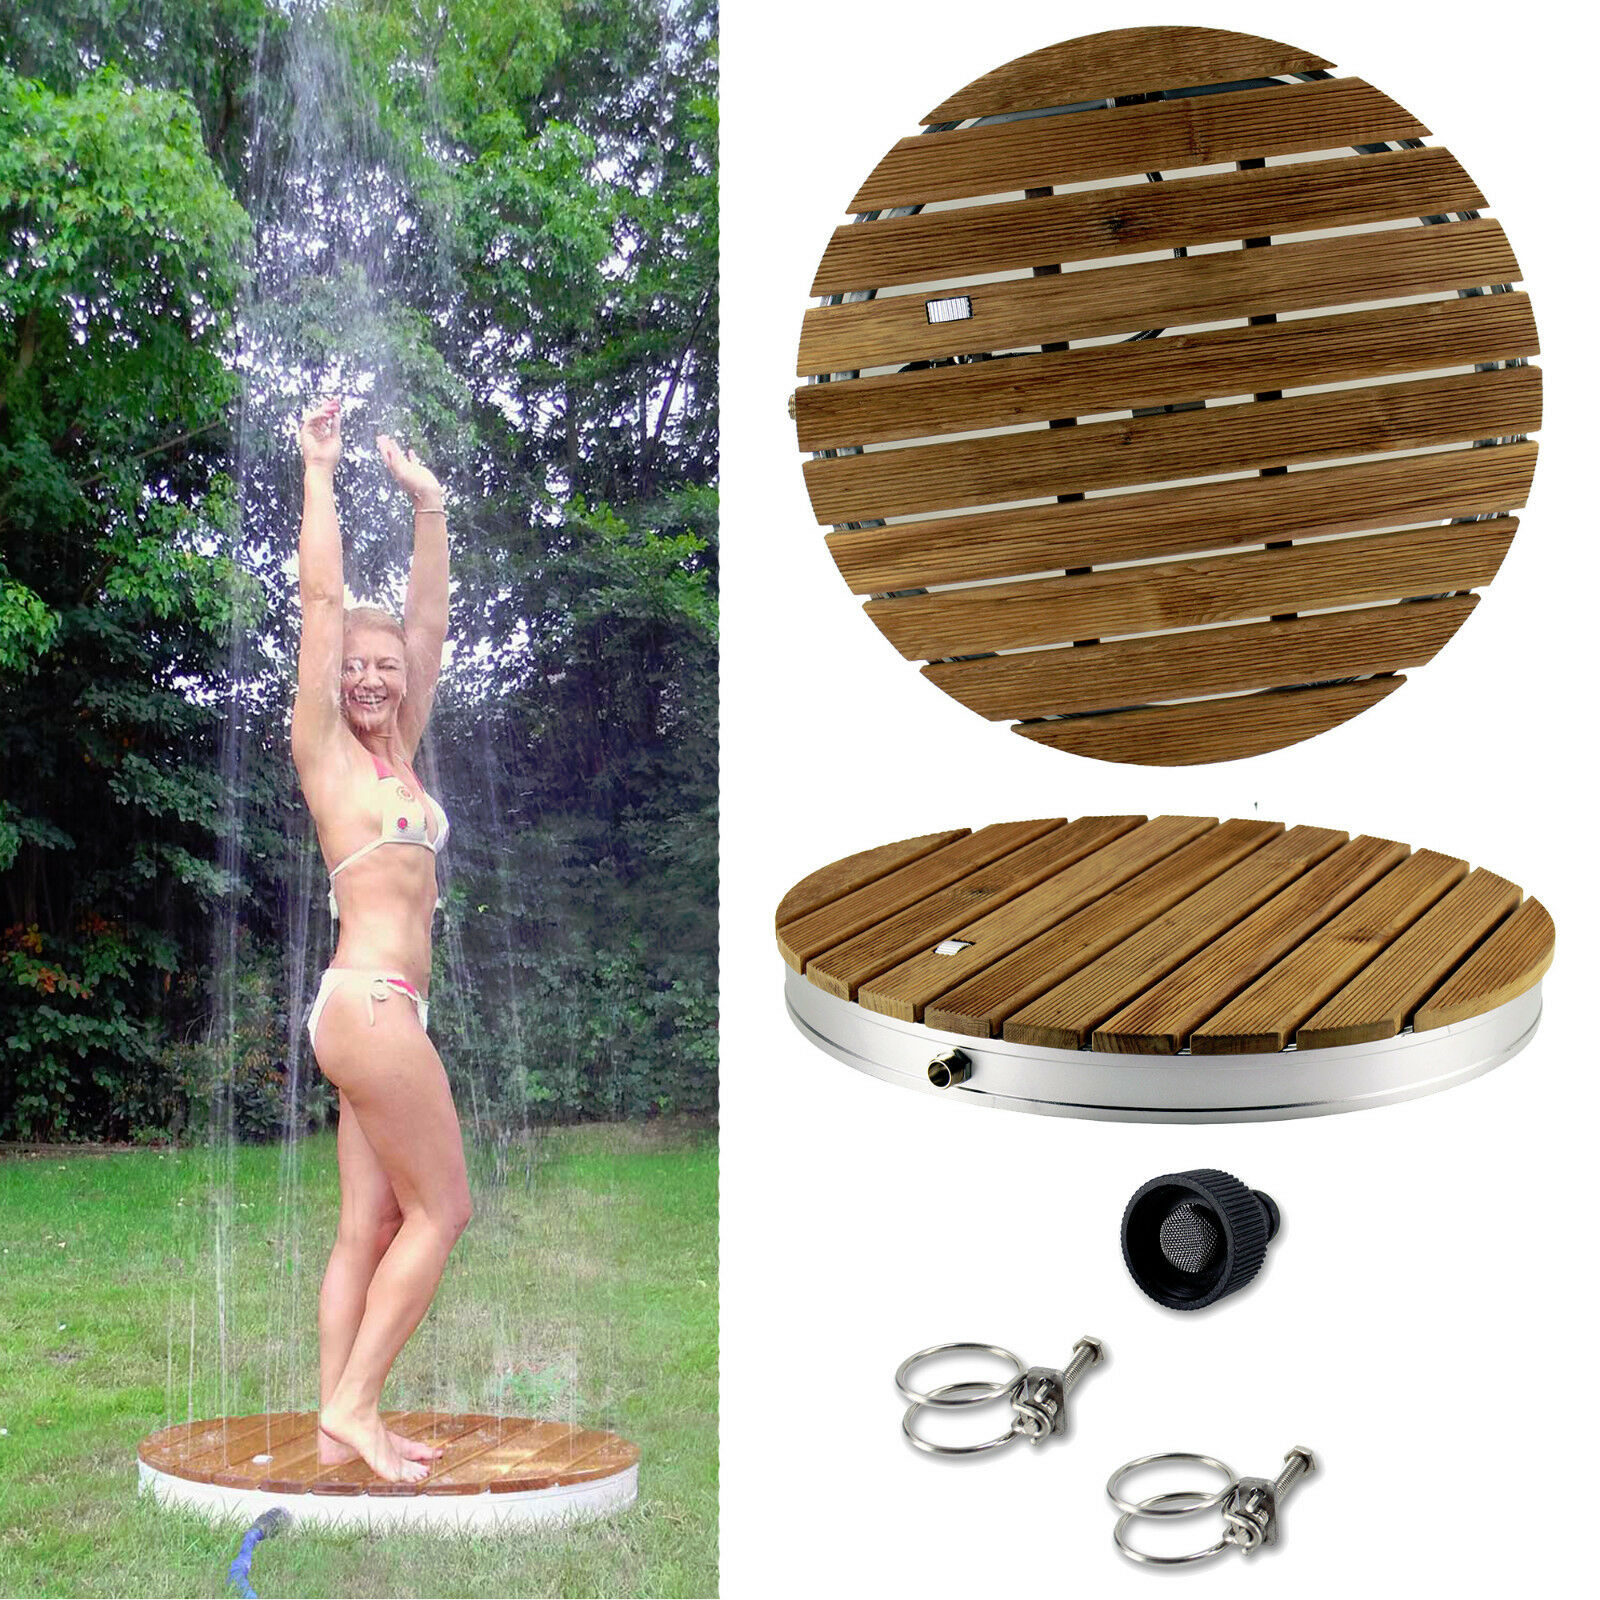 teakholz gartendusche au endusche pooldusche garten pool dusche outdoor shower ebay. Black Bedroom Furniture Sets. Home Design Ideas